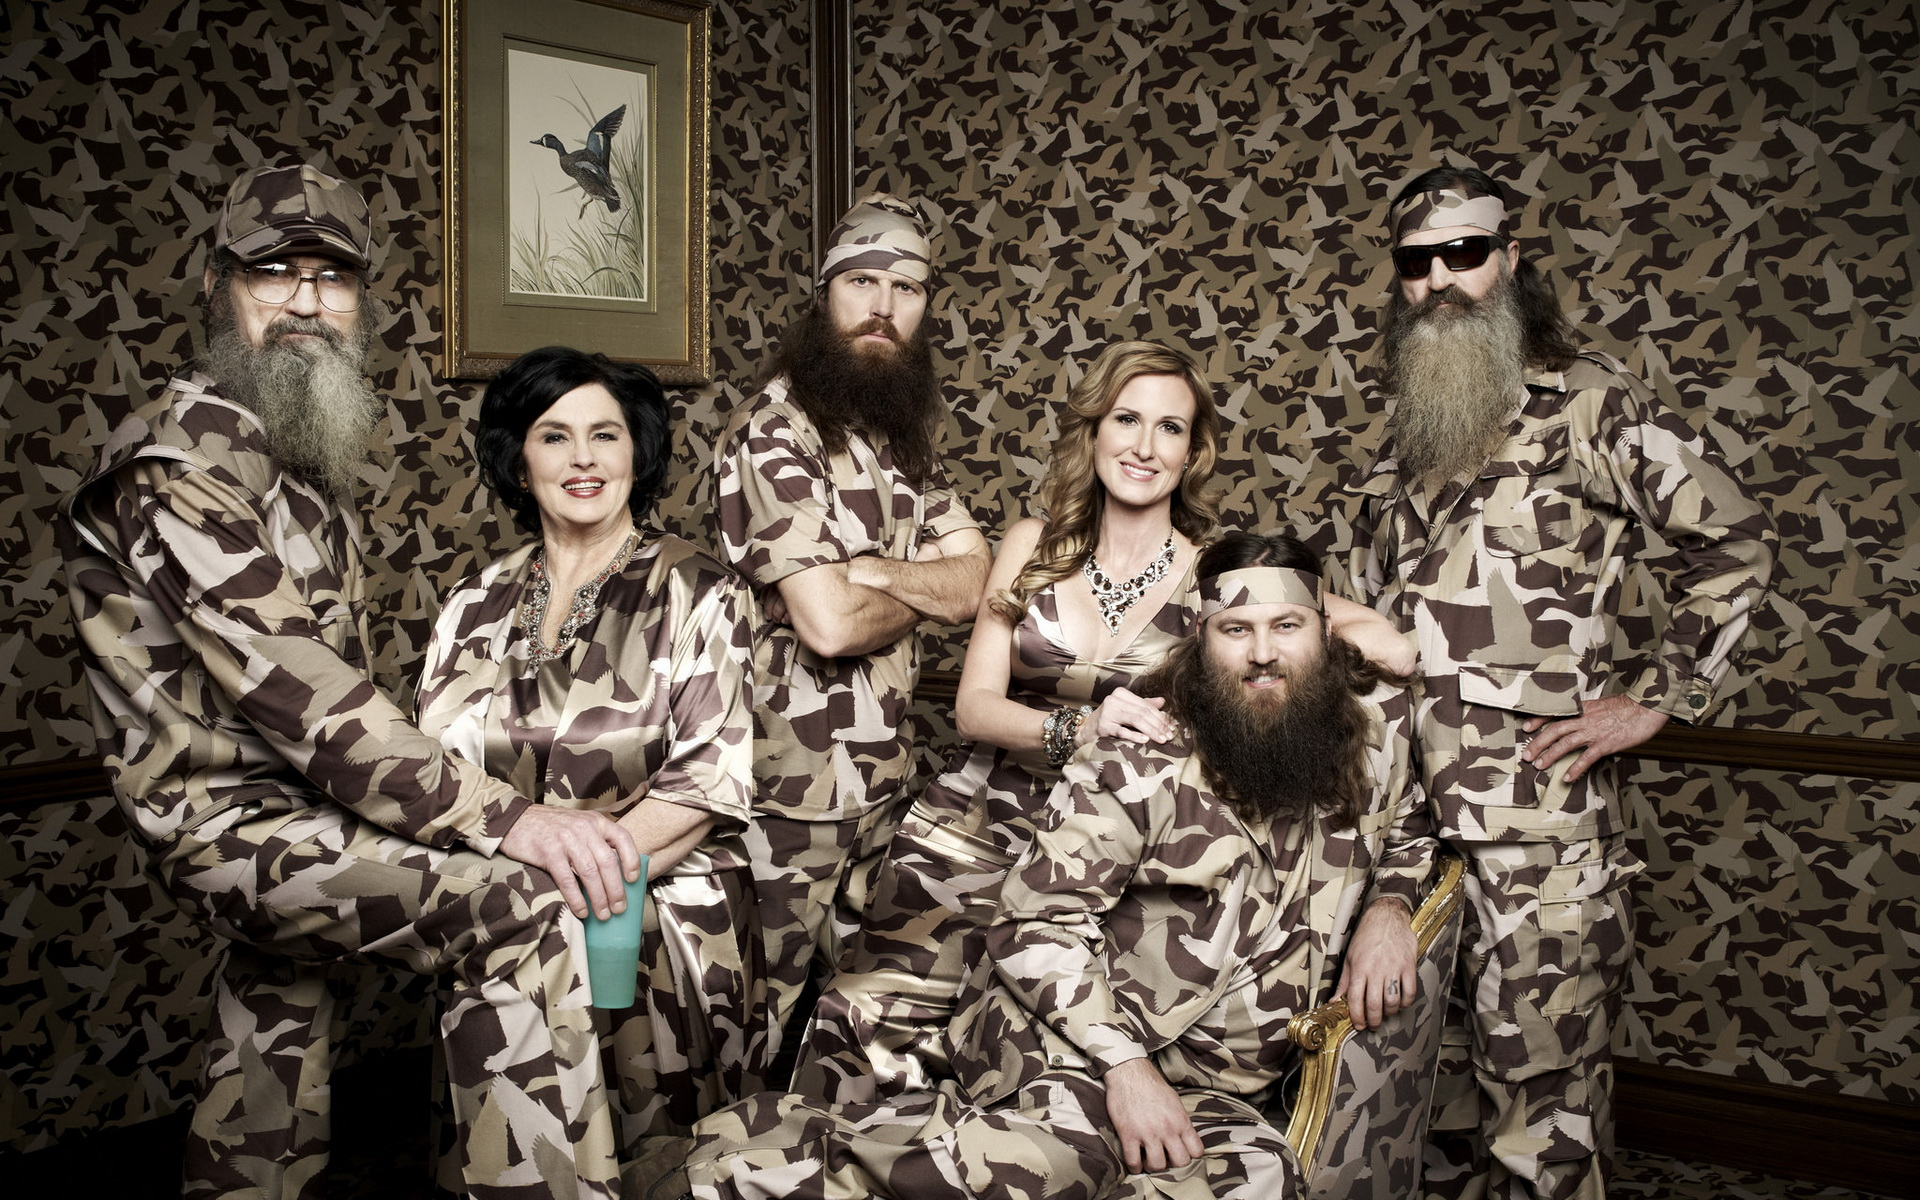 Description: Duck Dynasty HD Wallpaper is Wallapers for pc desktop